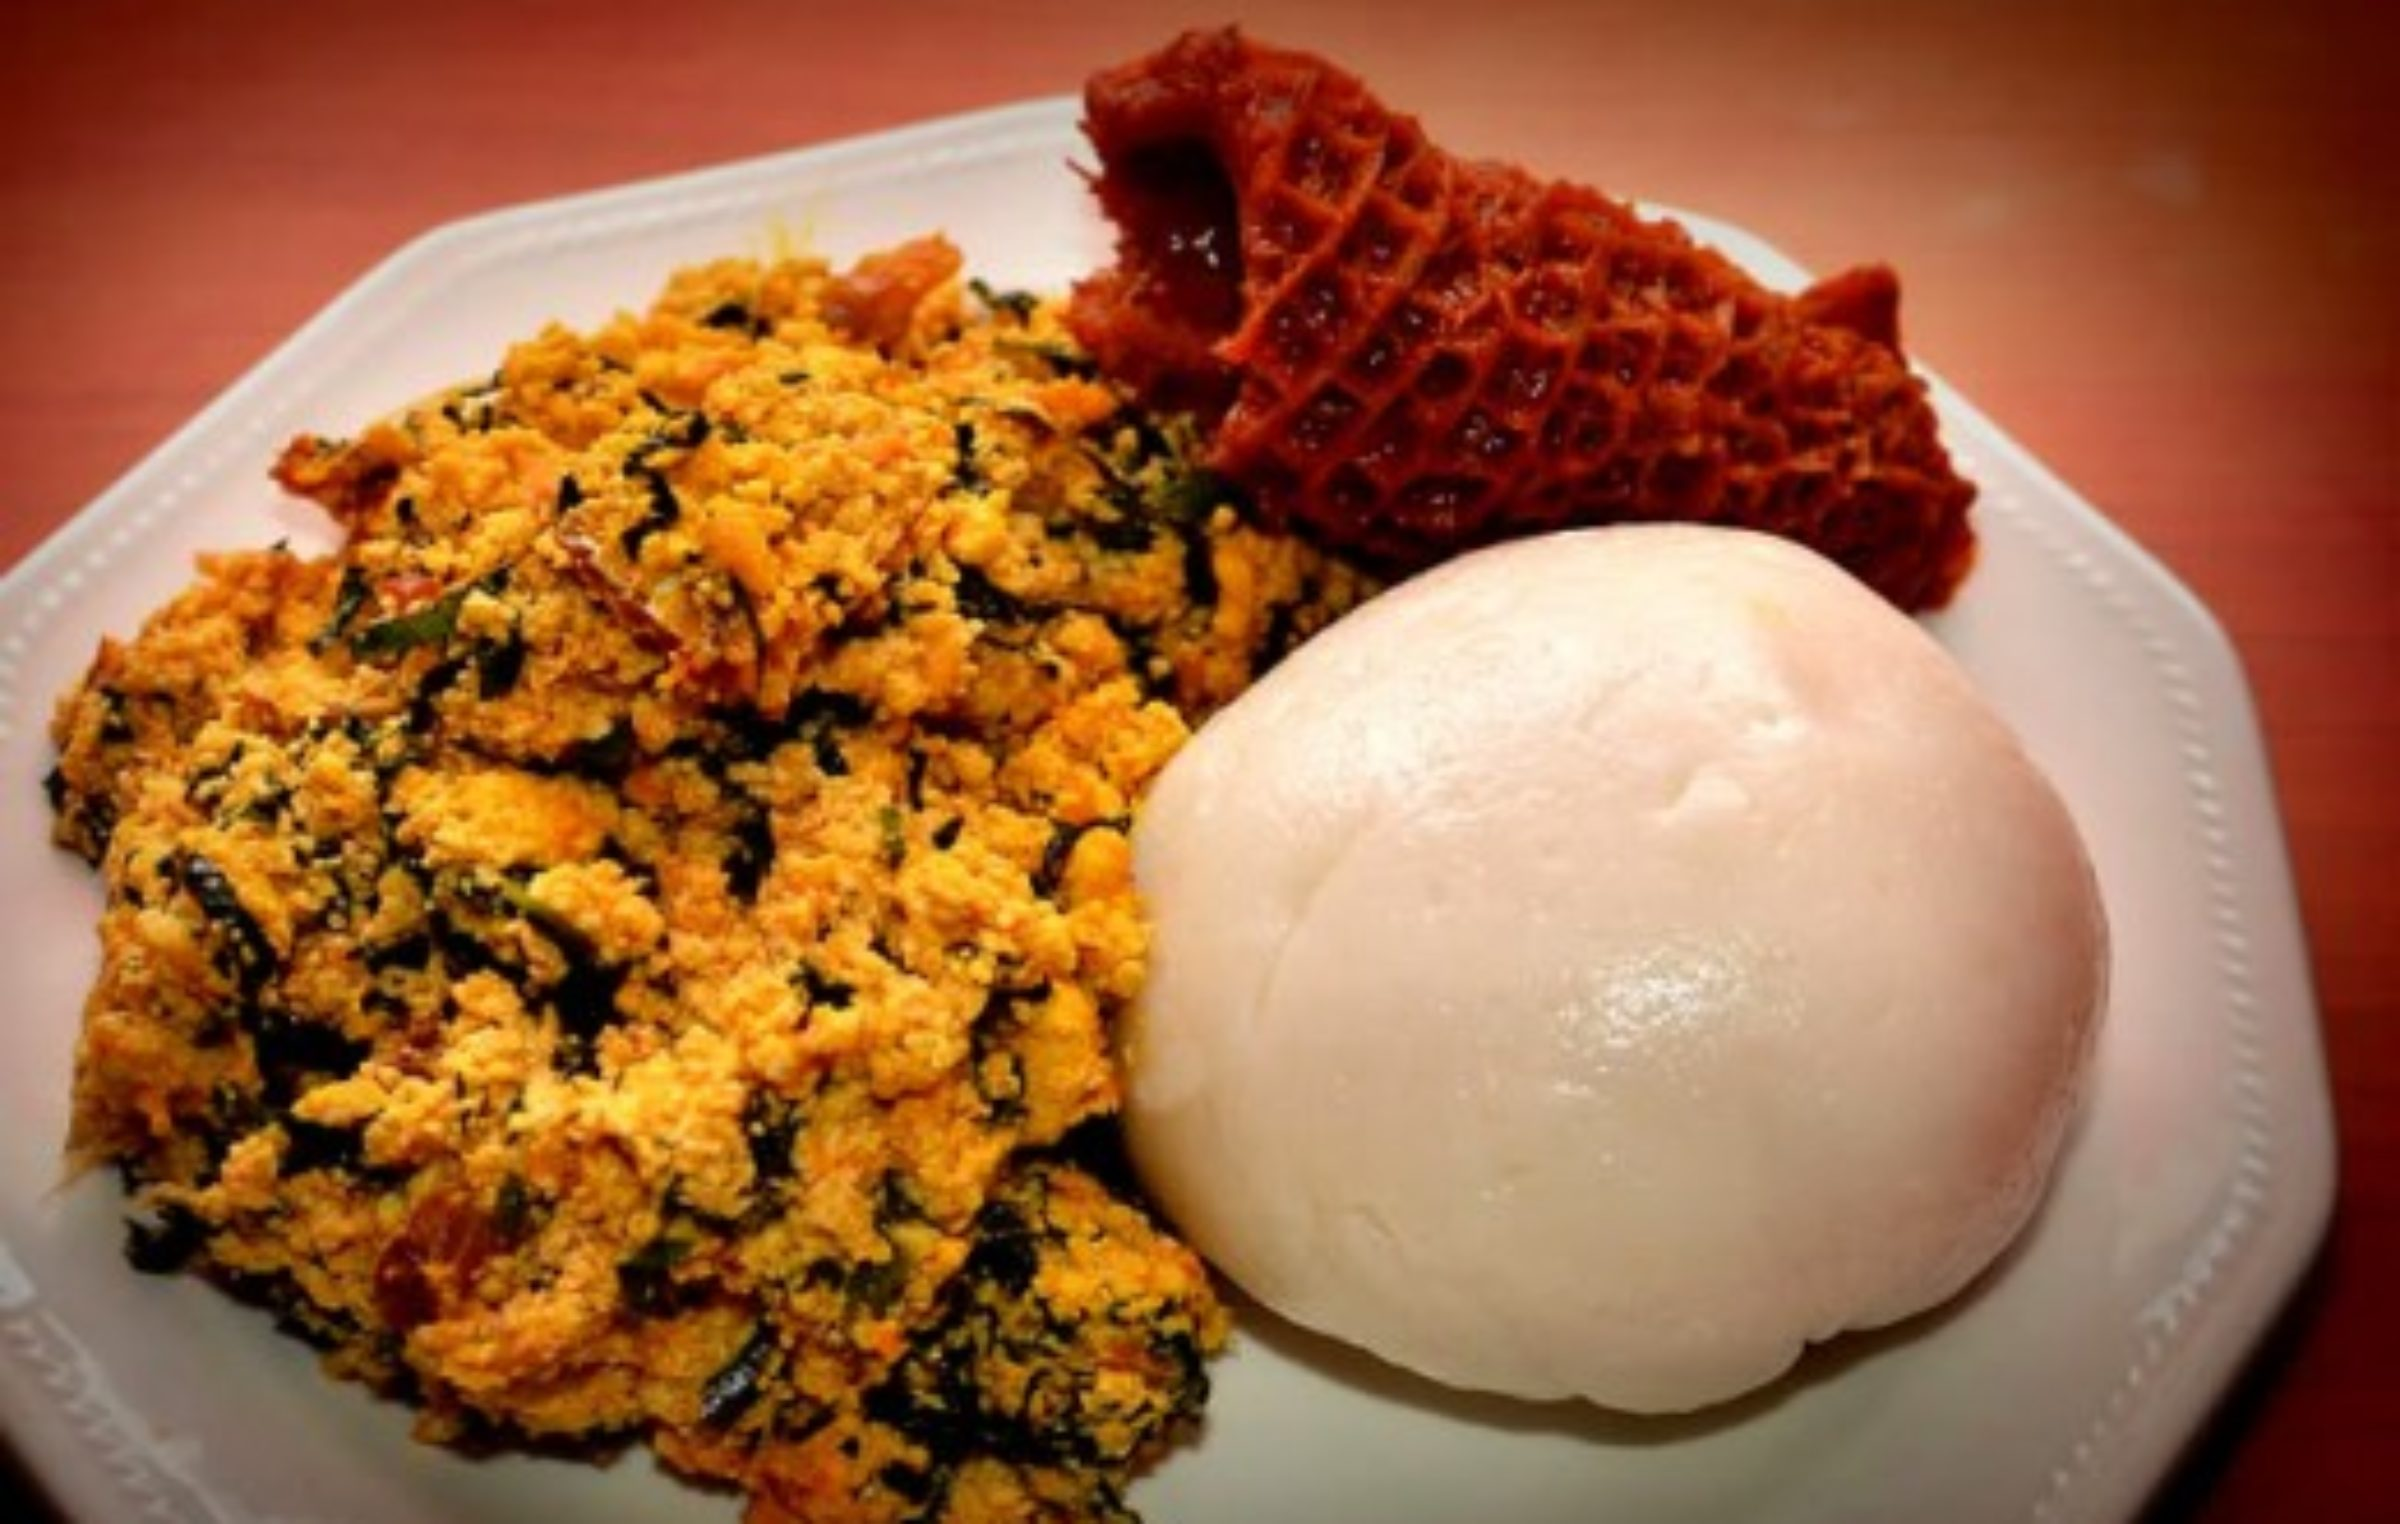 Egusi Soup And Pounded Yam Nigerian Cuisine Stock Photo More Pictures of pounded yam and egusi soup